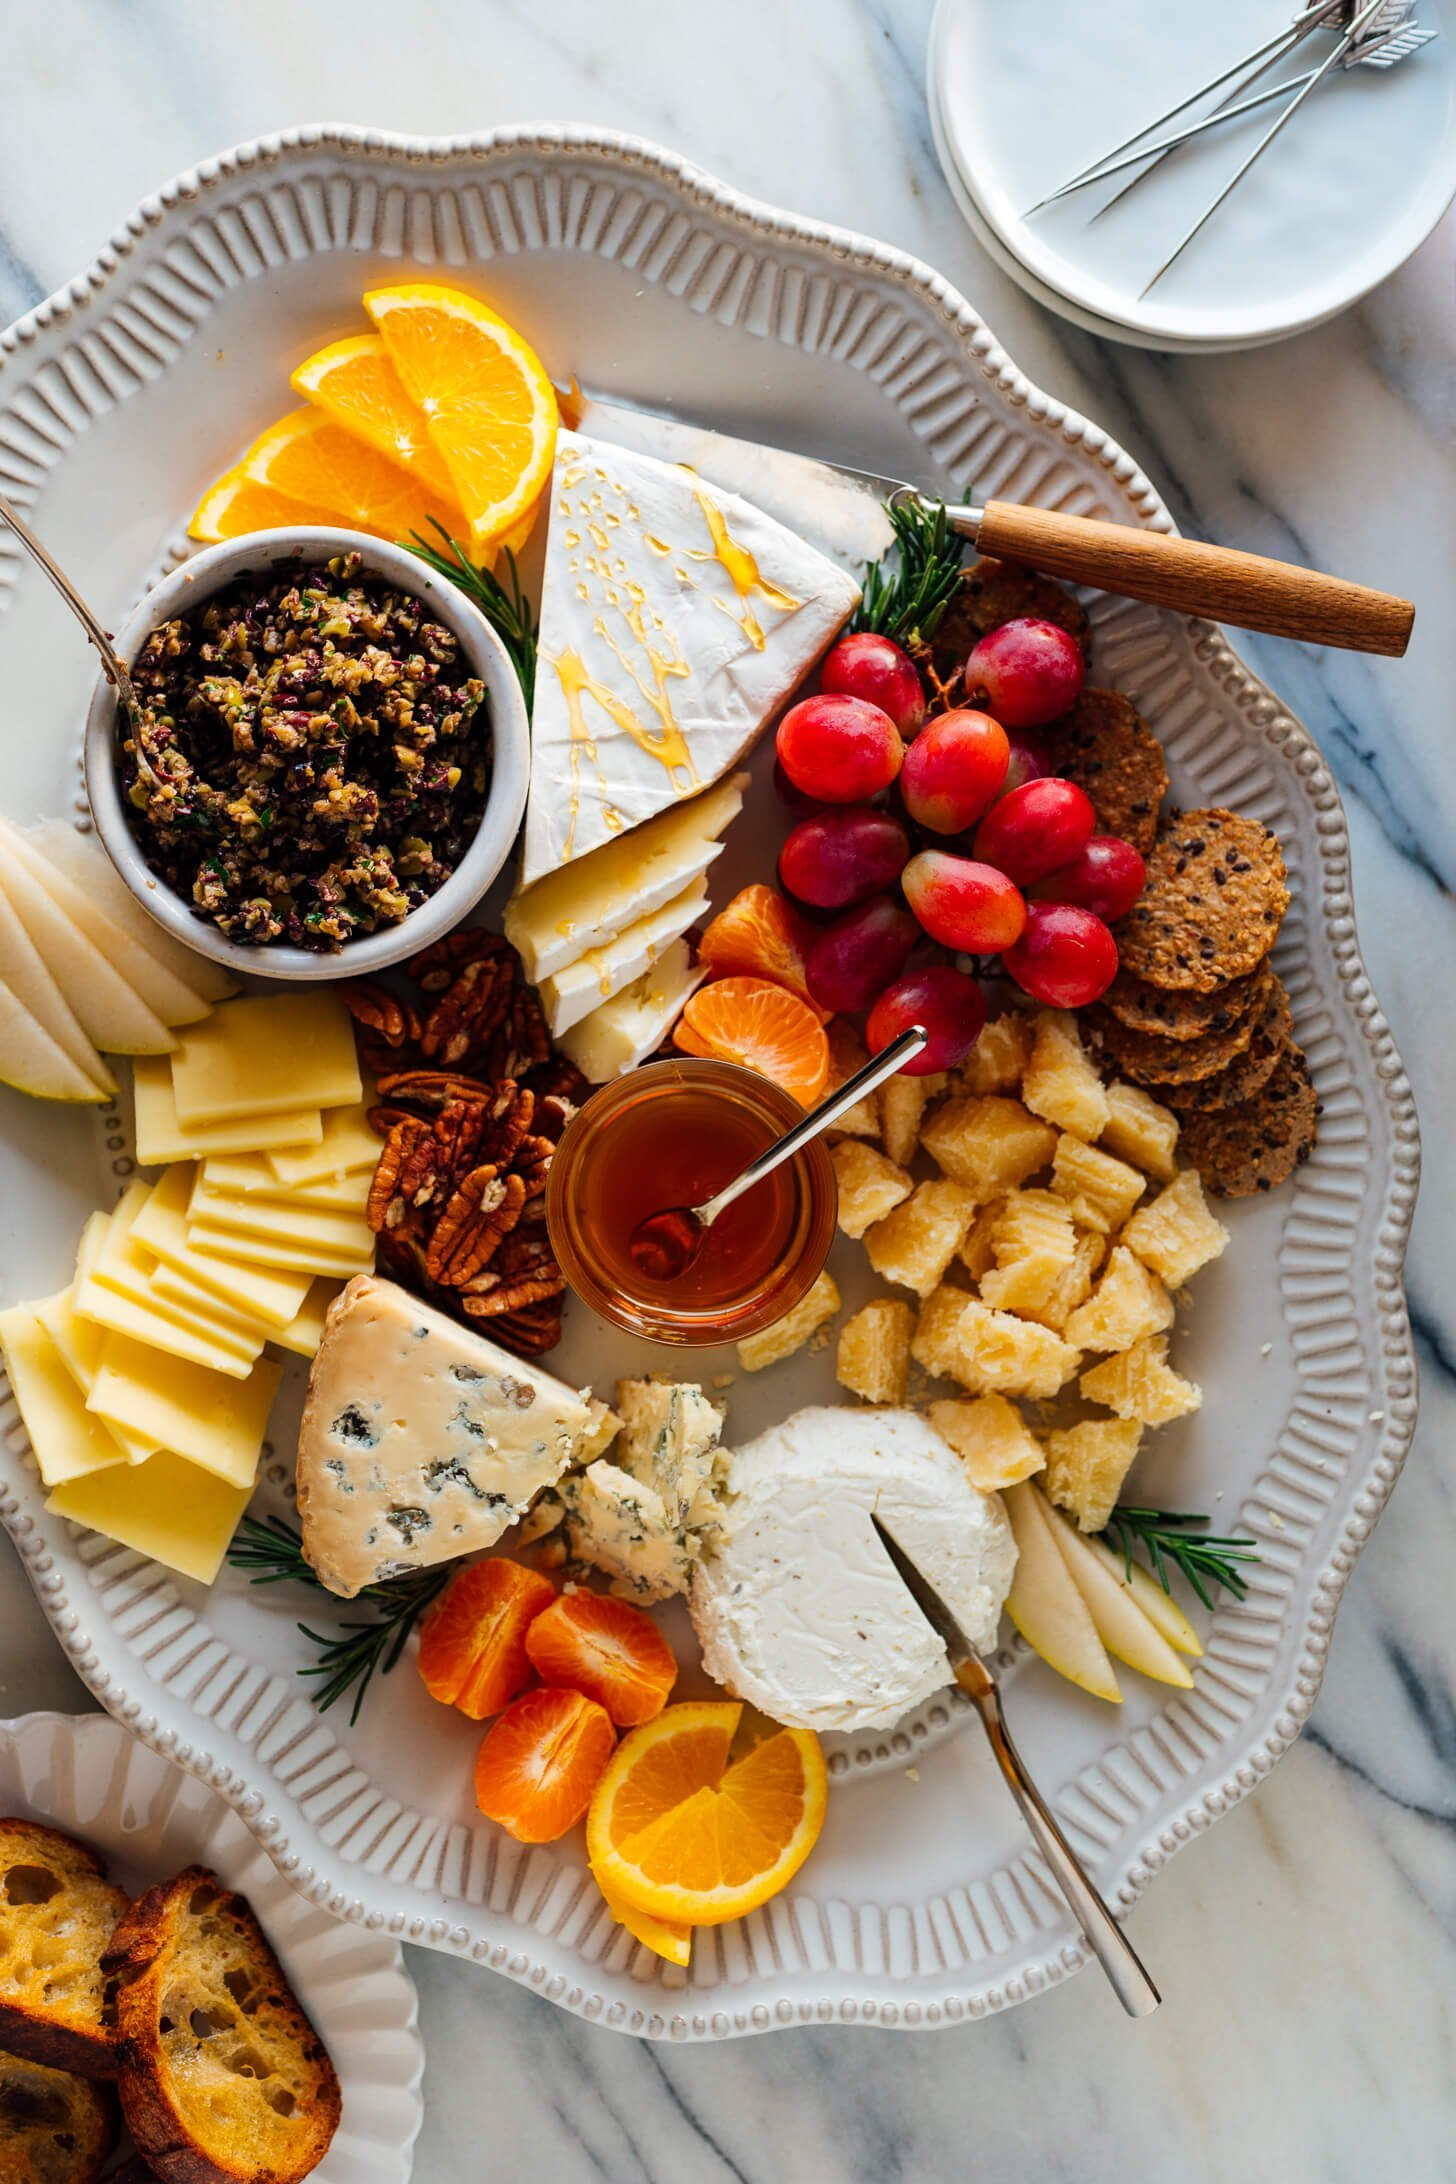 How to make a standout cheese board